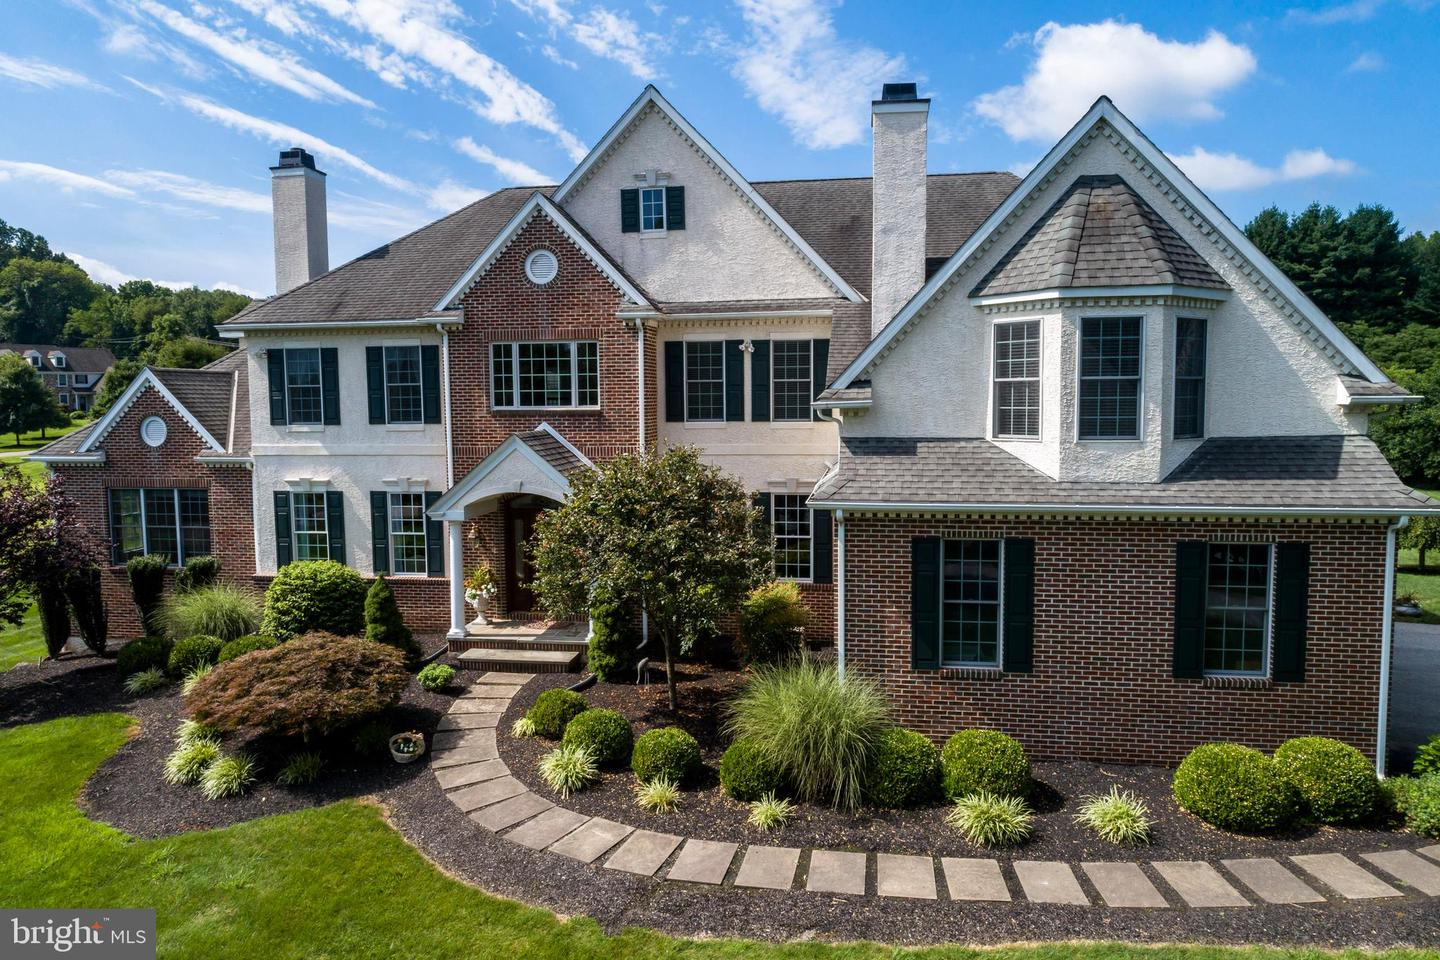 46 Thornbird Way Newtown Square, PA 19073